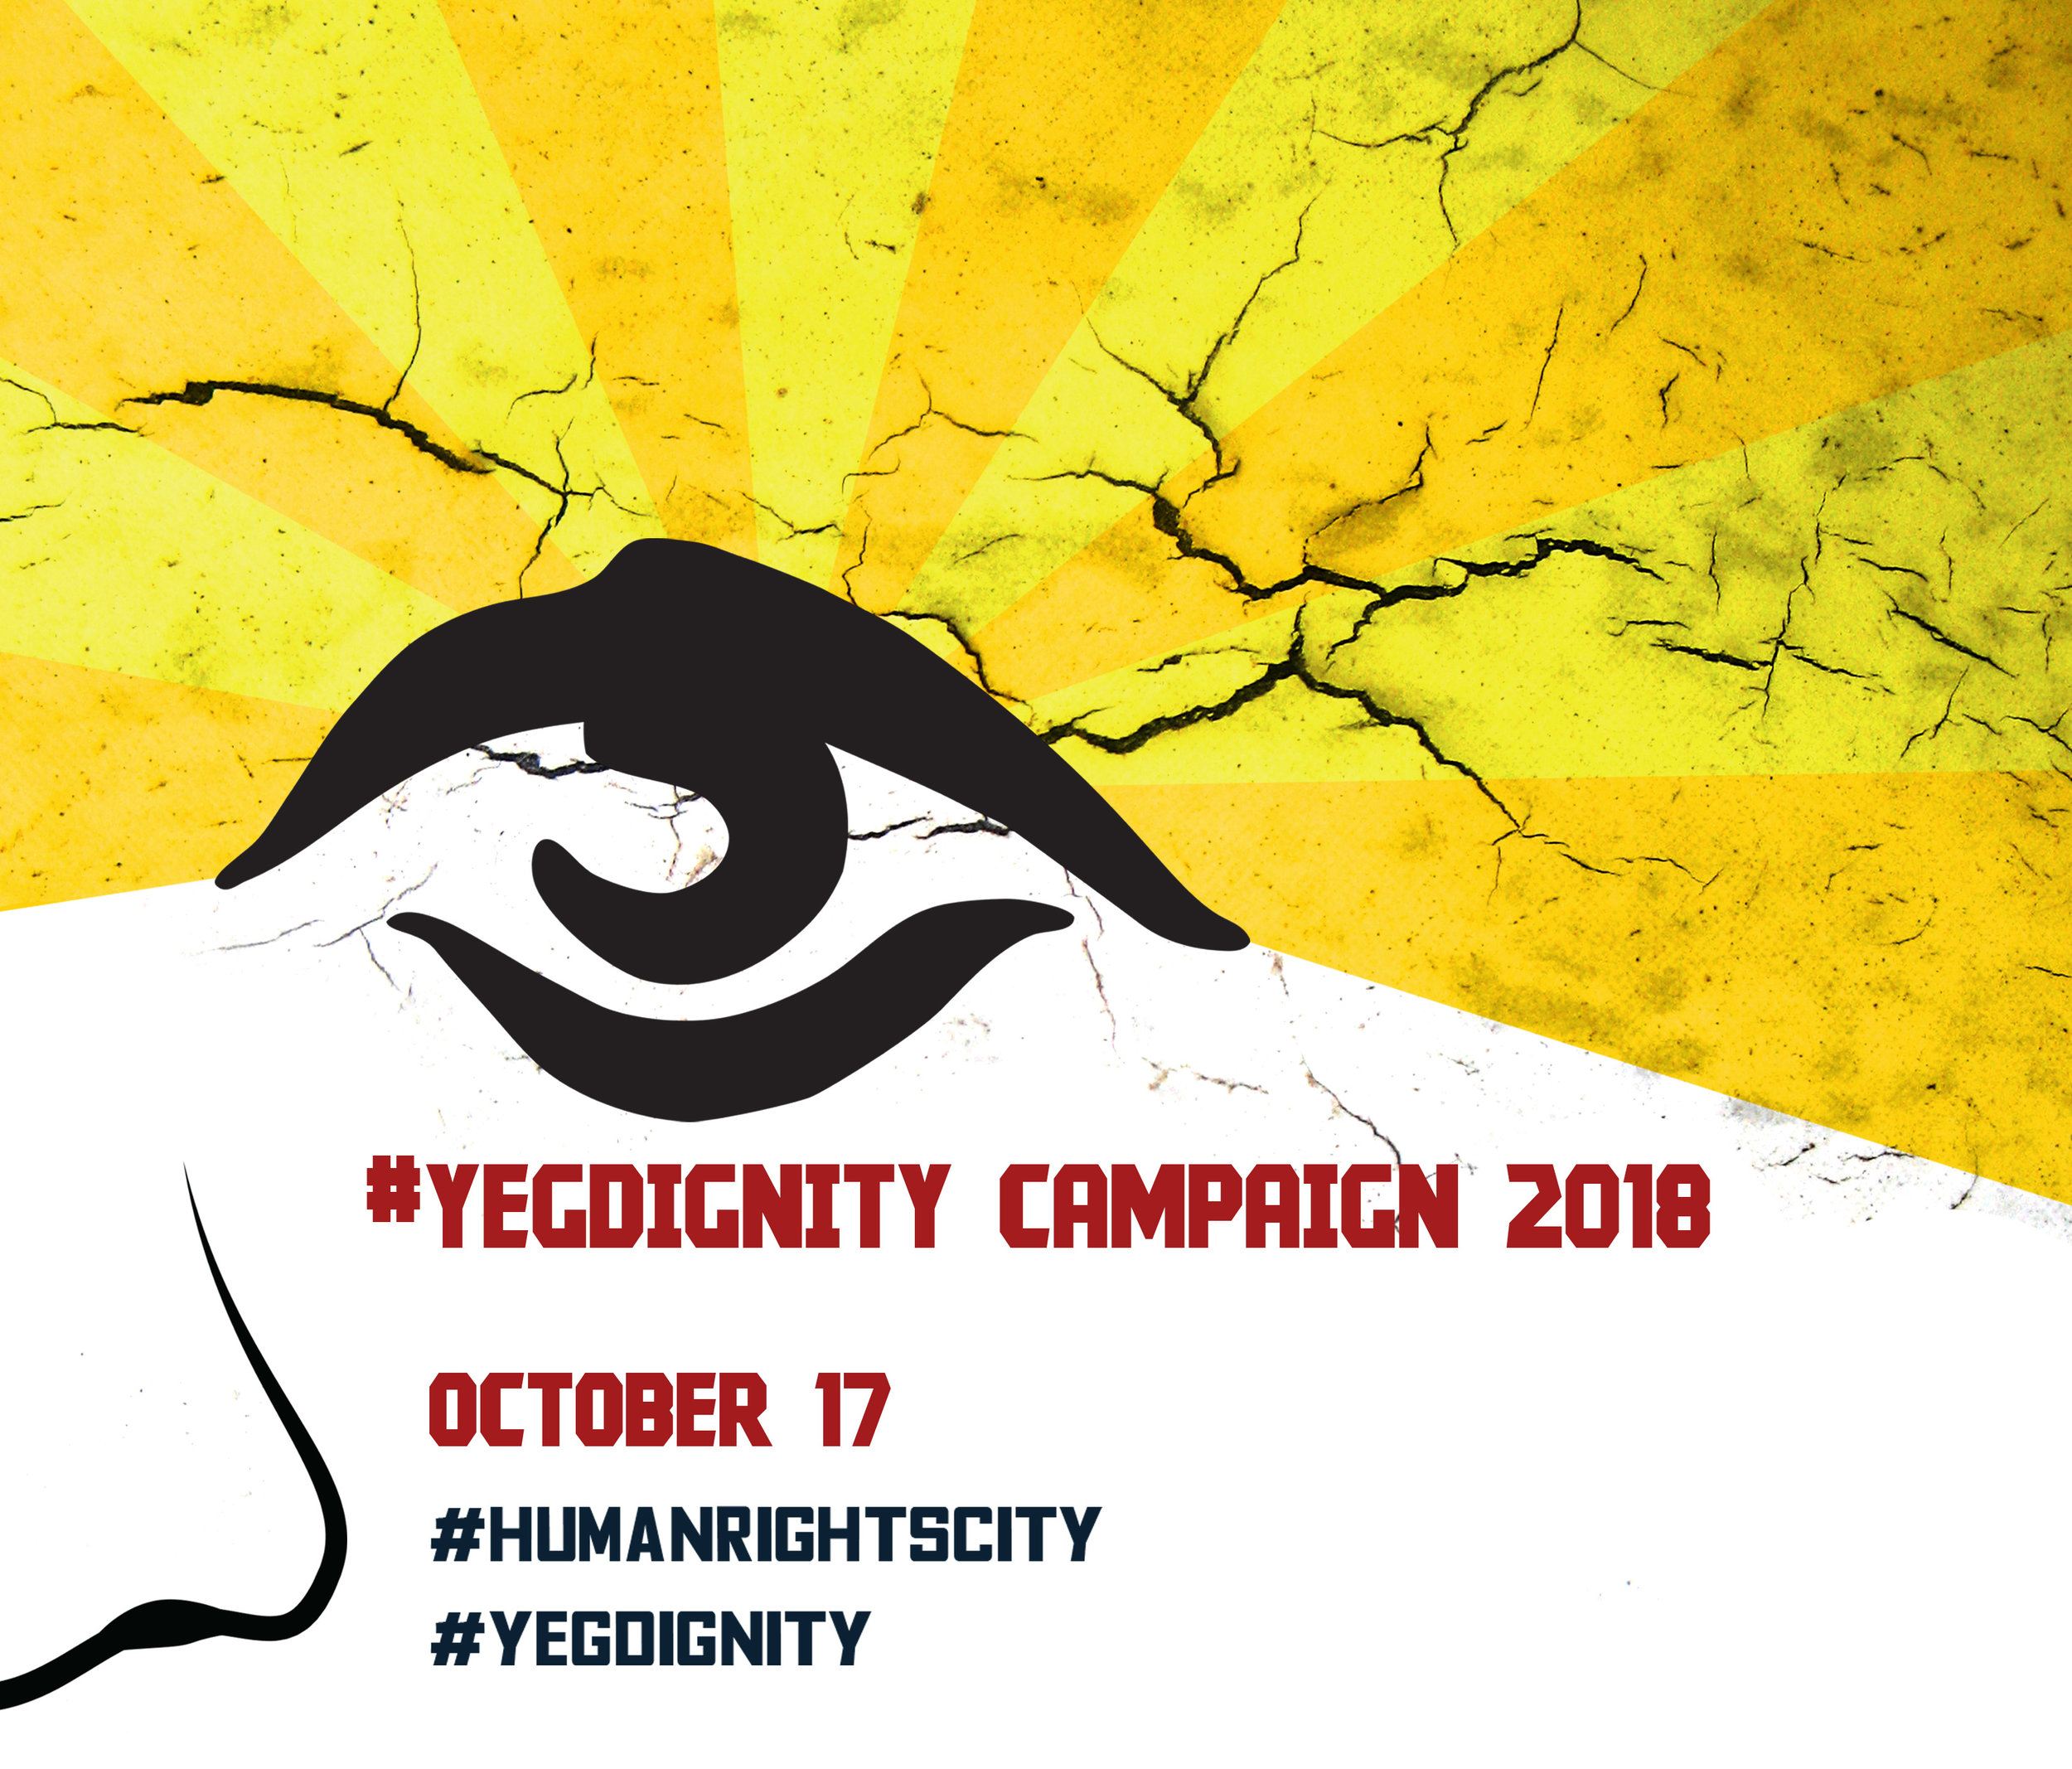 #YEGDignity Campaing